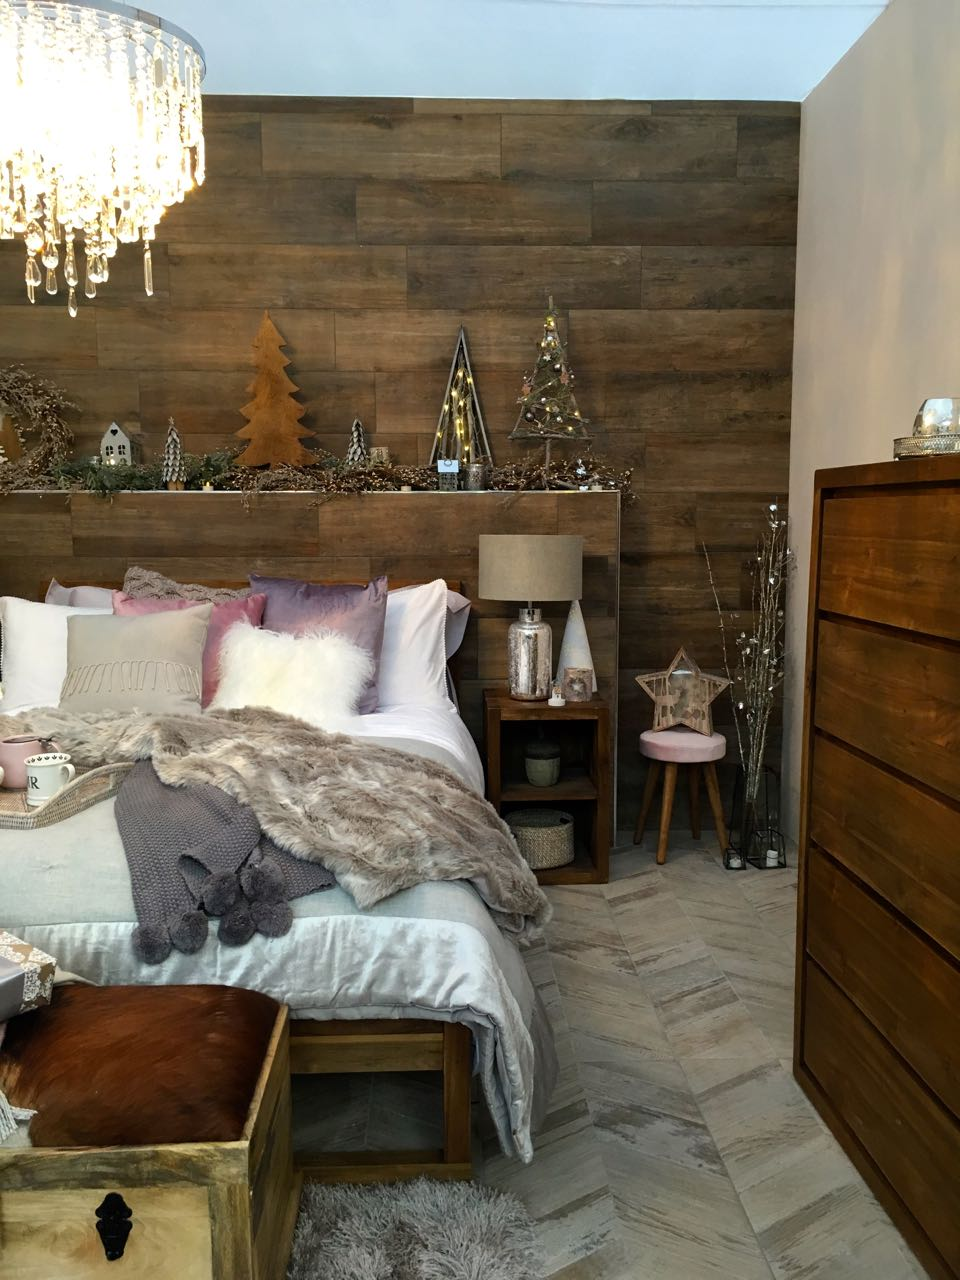 a look at the bedside tables  in this room set at the Ideal Home Show at Christmas